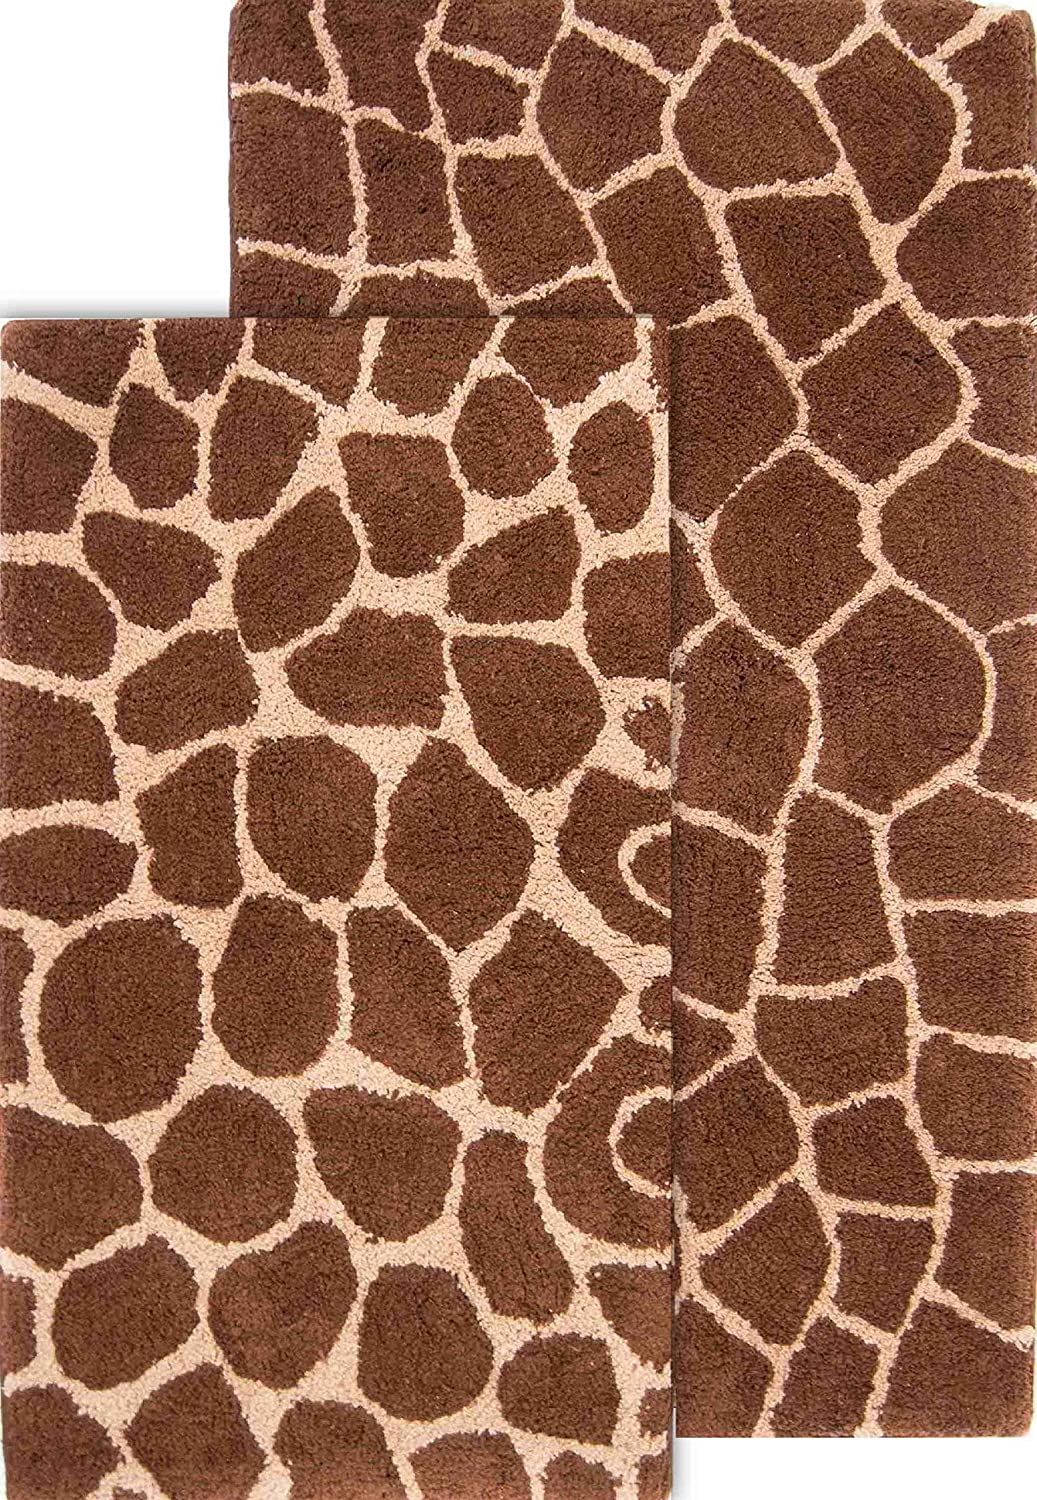 Chesapeake 2-Piece Giraffe 21-Inch by Selling and selling 34-Inch 40- We OFFer at cheap prices 24-Inch